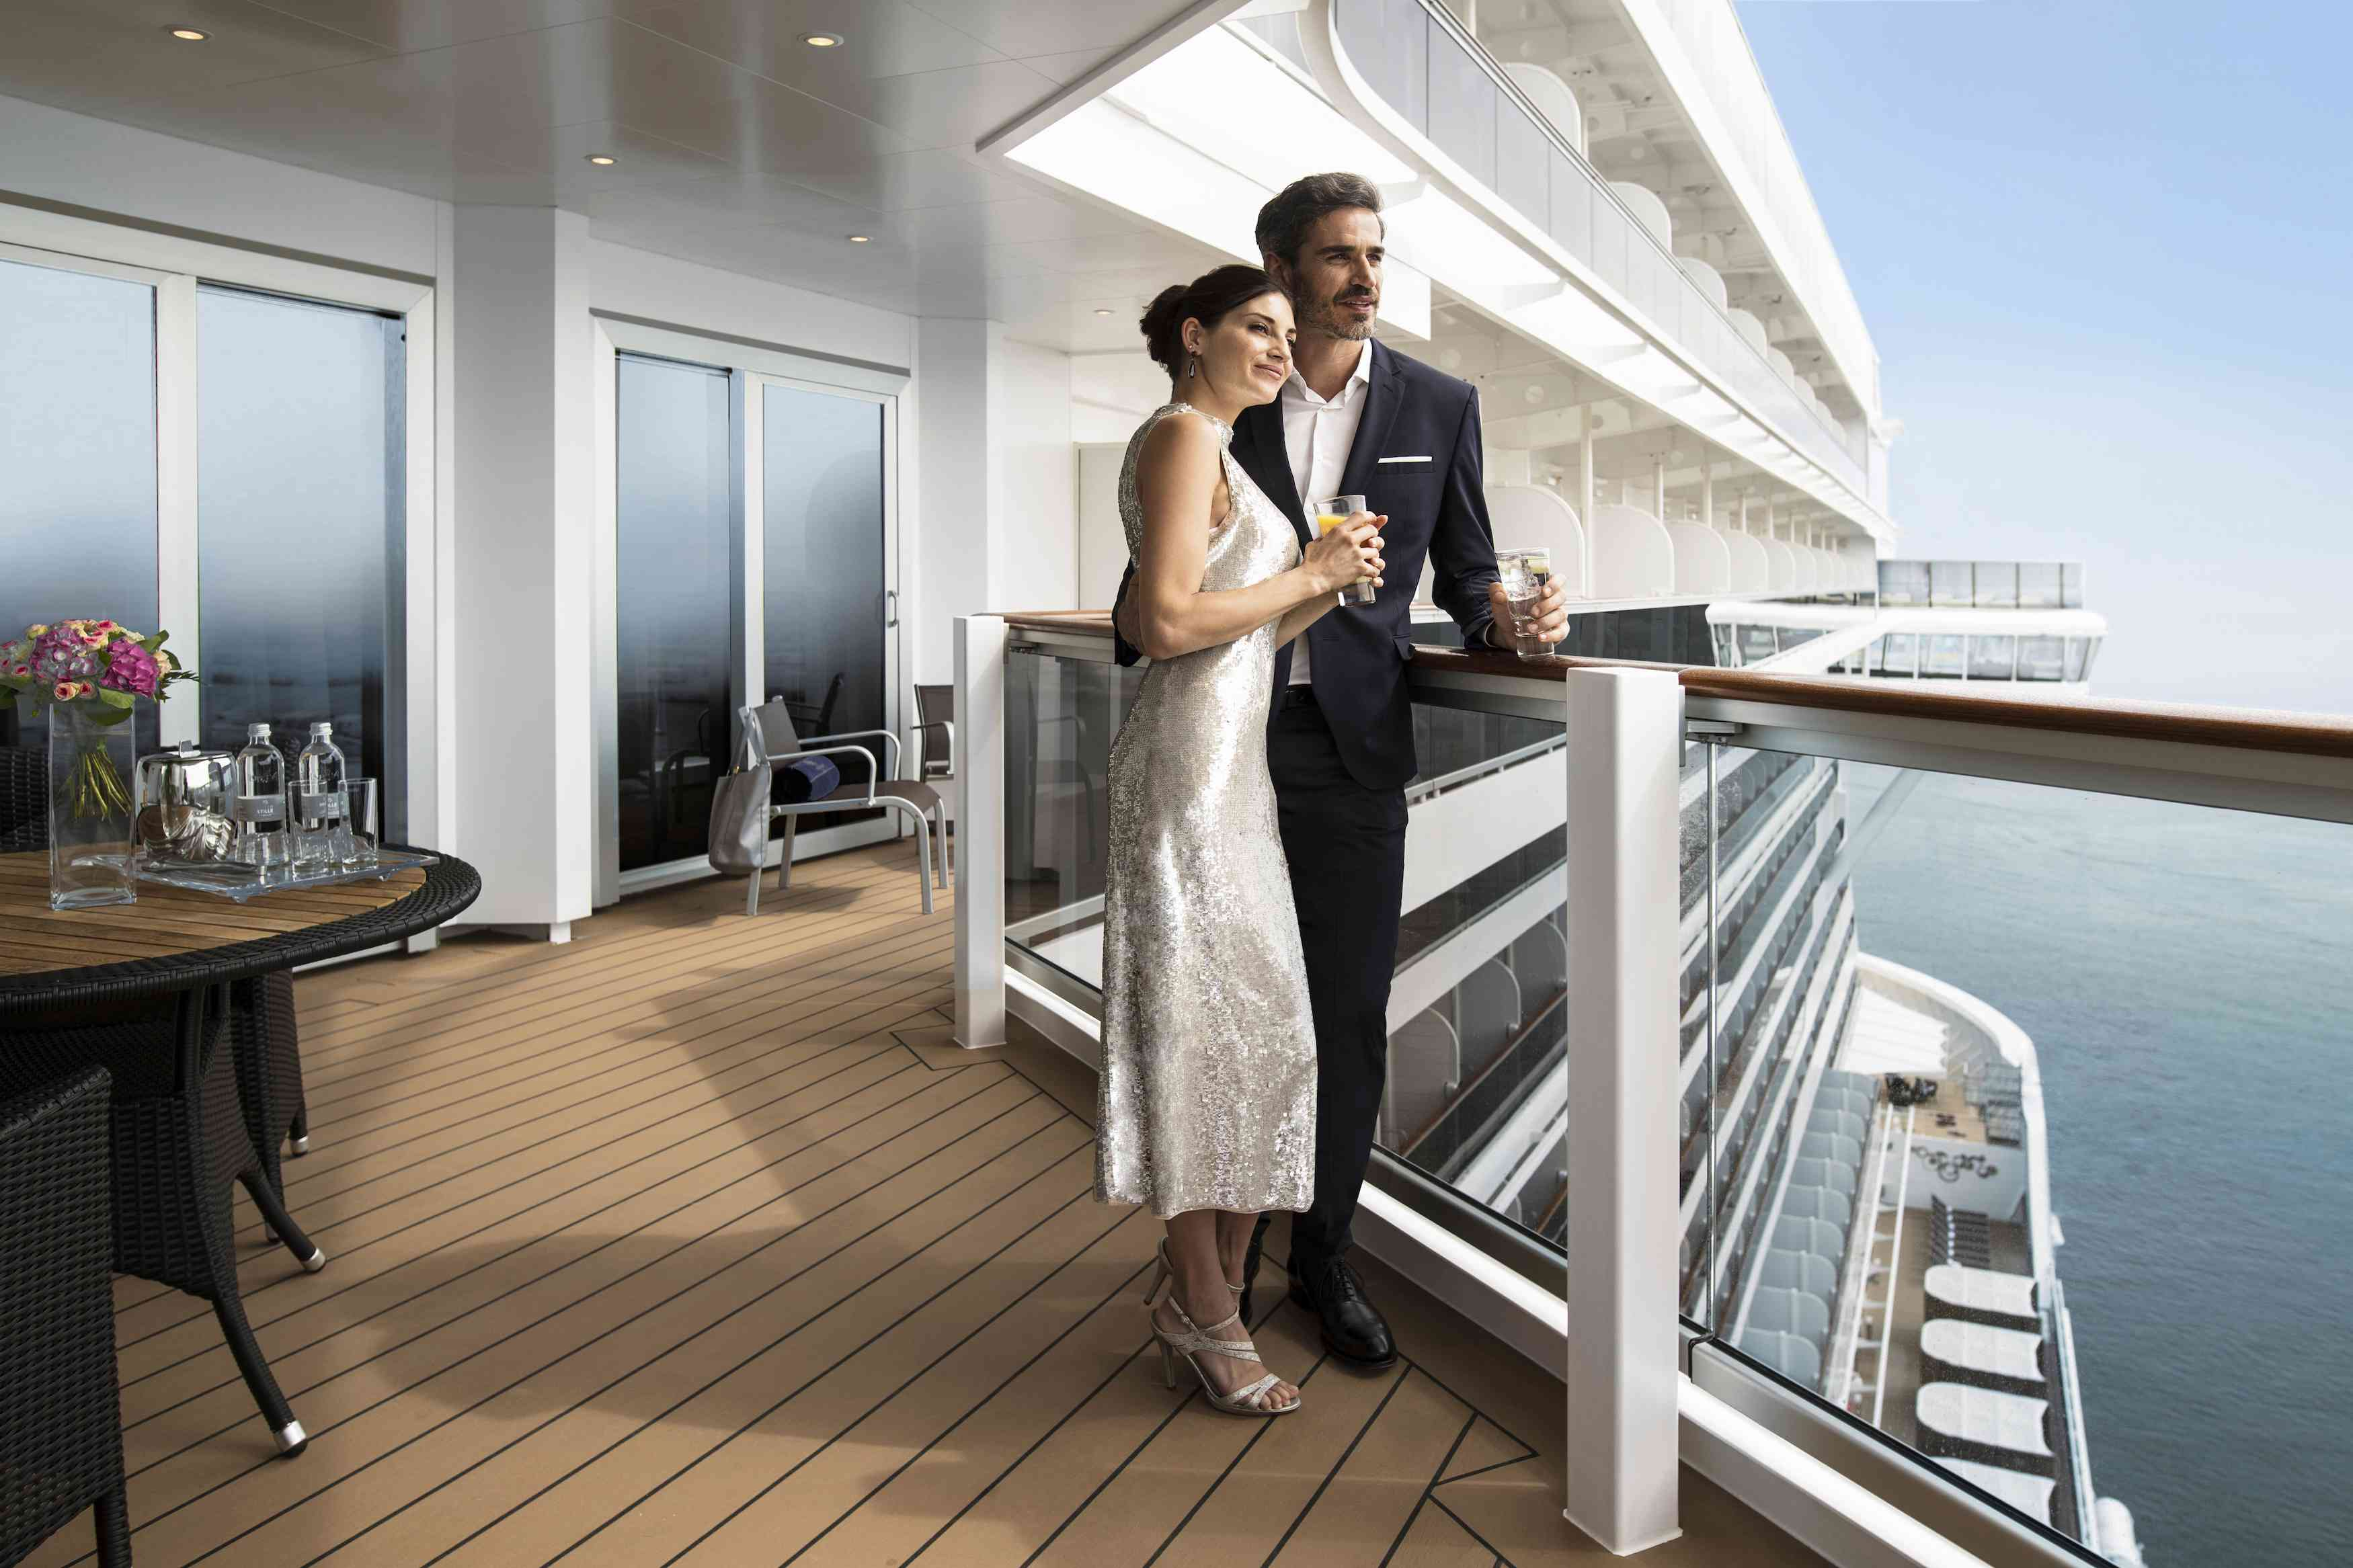 Bride and groom on the deck of an MSC Cruise ship